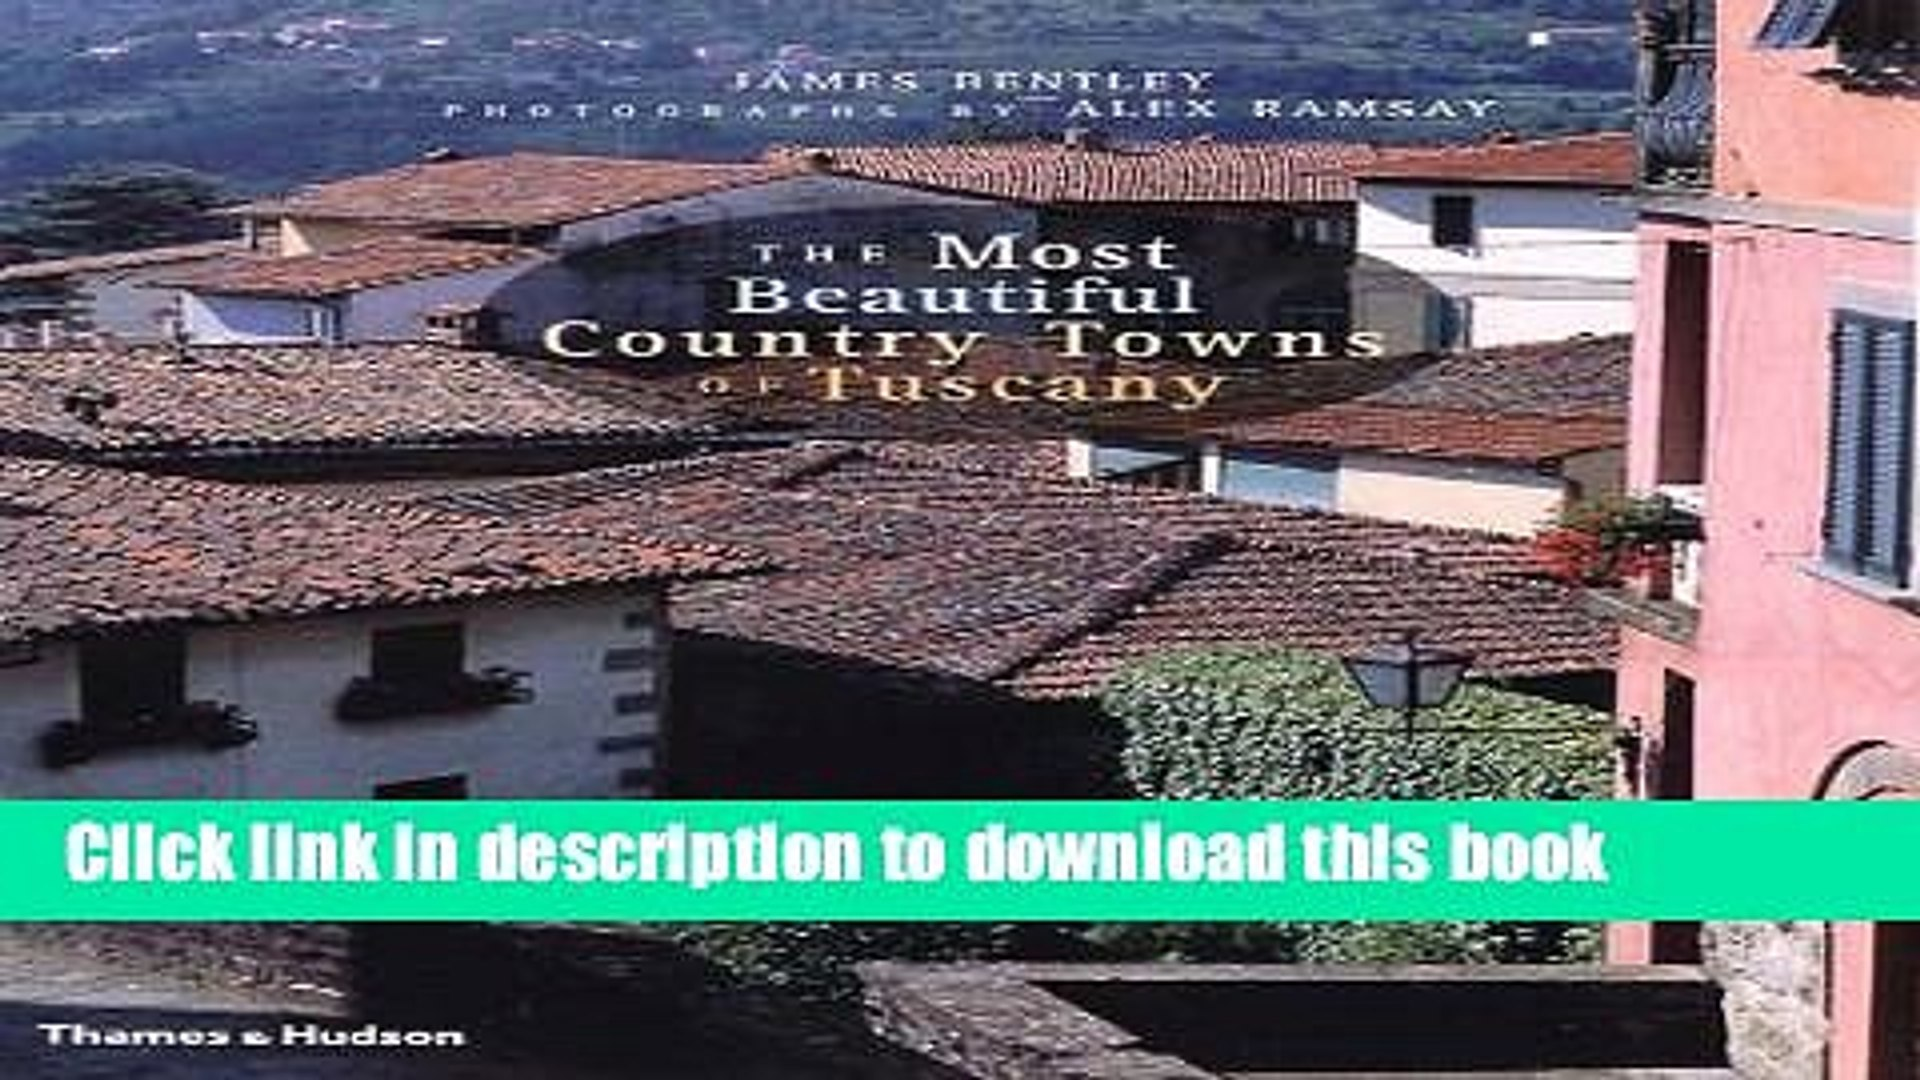 [PDF] The Most Beautiful Country Towns of Tuscany (Most Beautiful Villages Series) [Full Ebook]